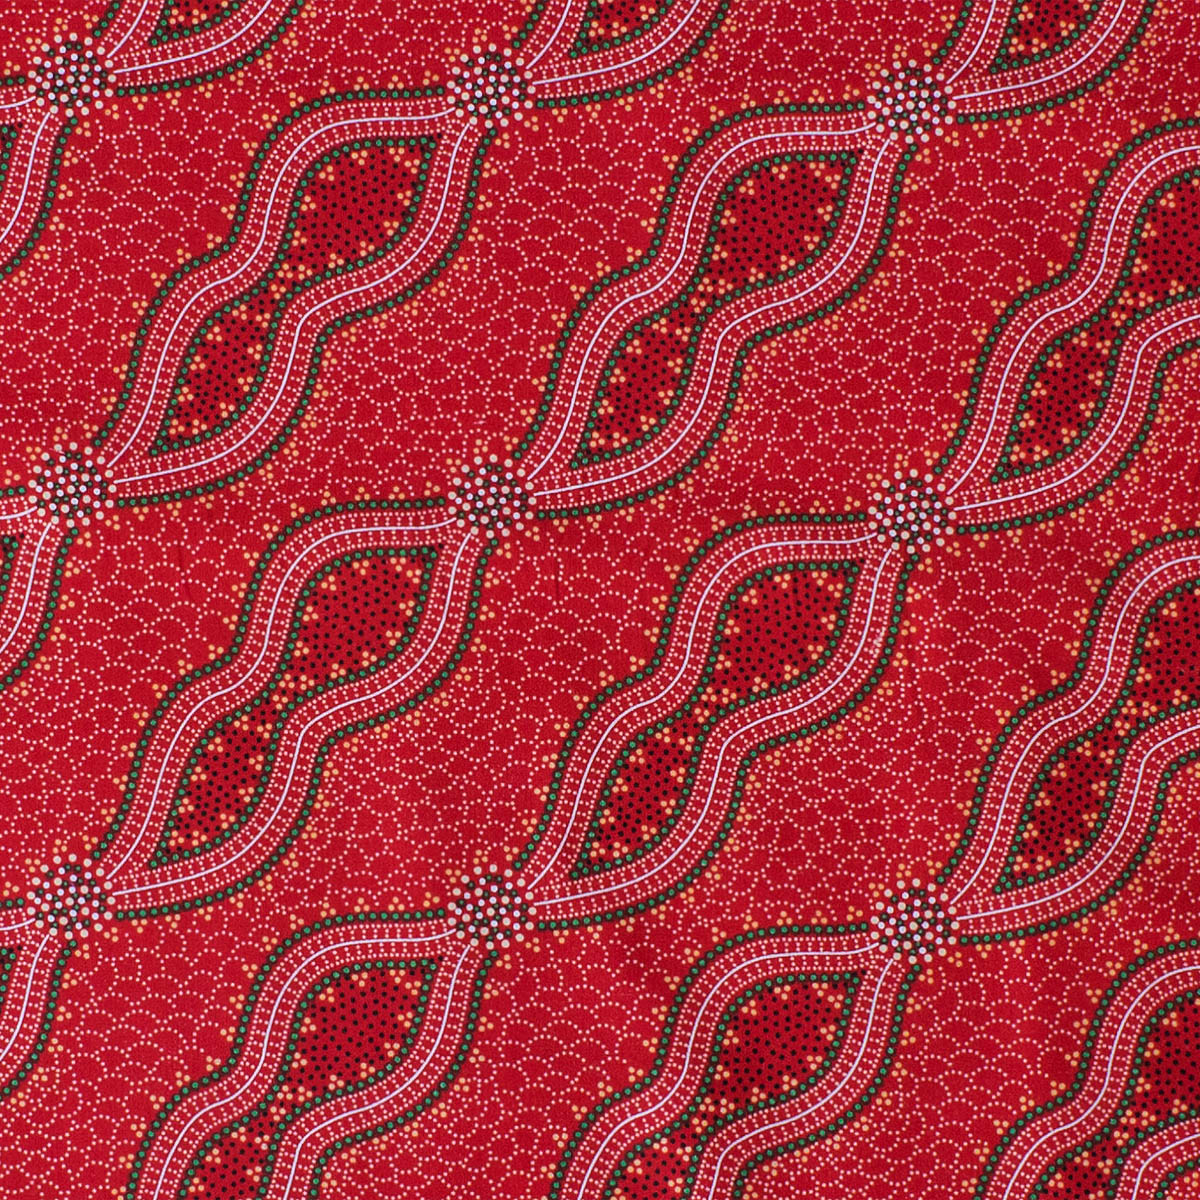 BUSH SPINIFEX RED by Aboriginal Artist Geraldine Riley